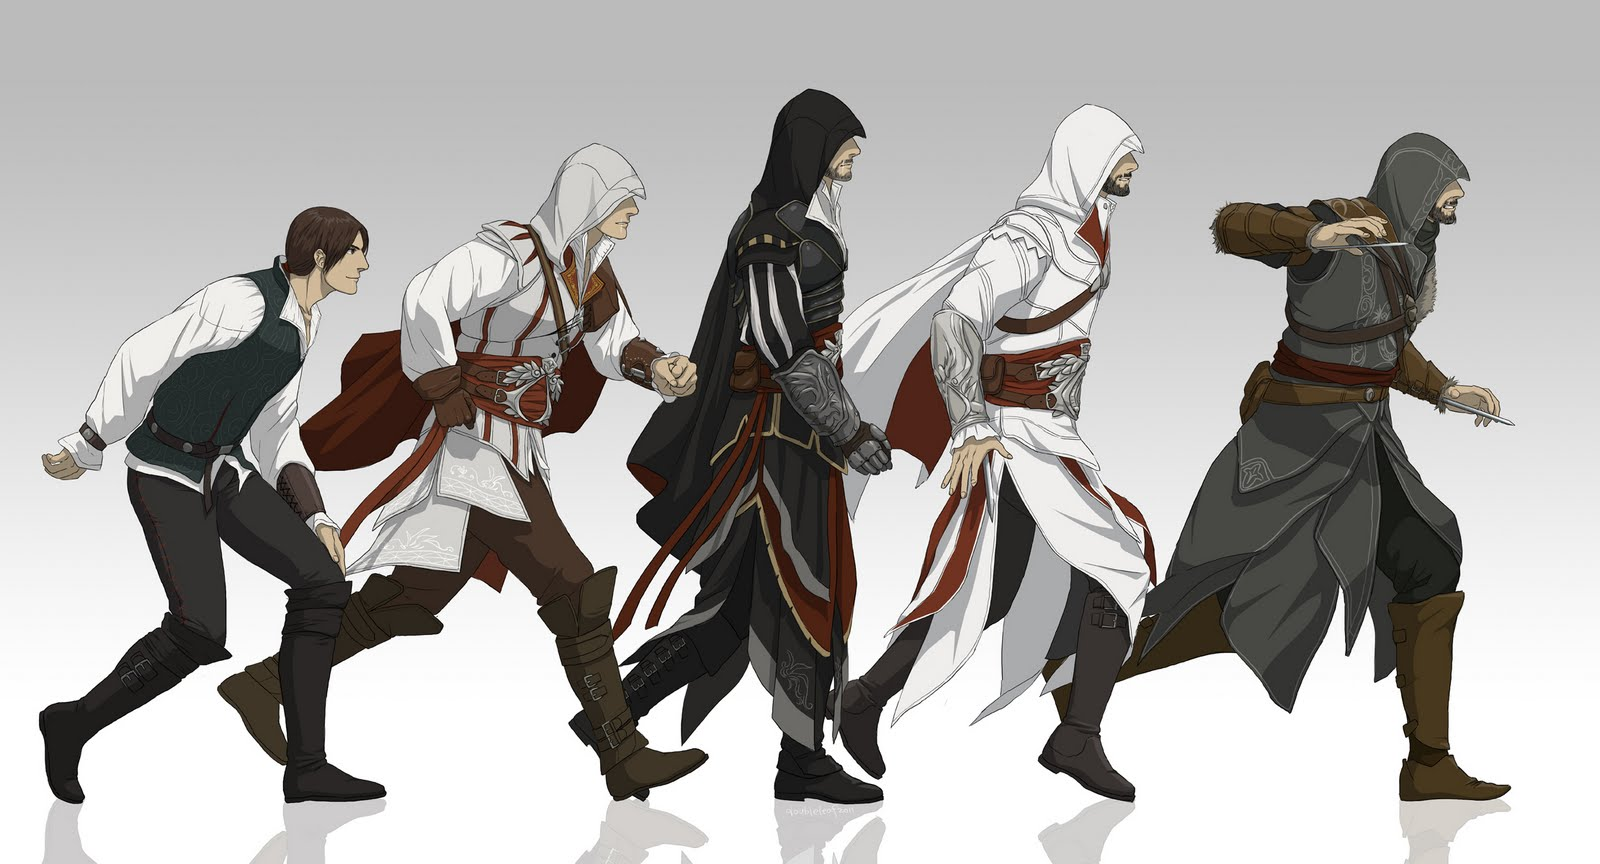 evolution_of_ezio_by_doubleleaf-d3icnak.jpg